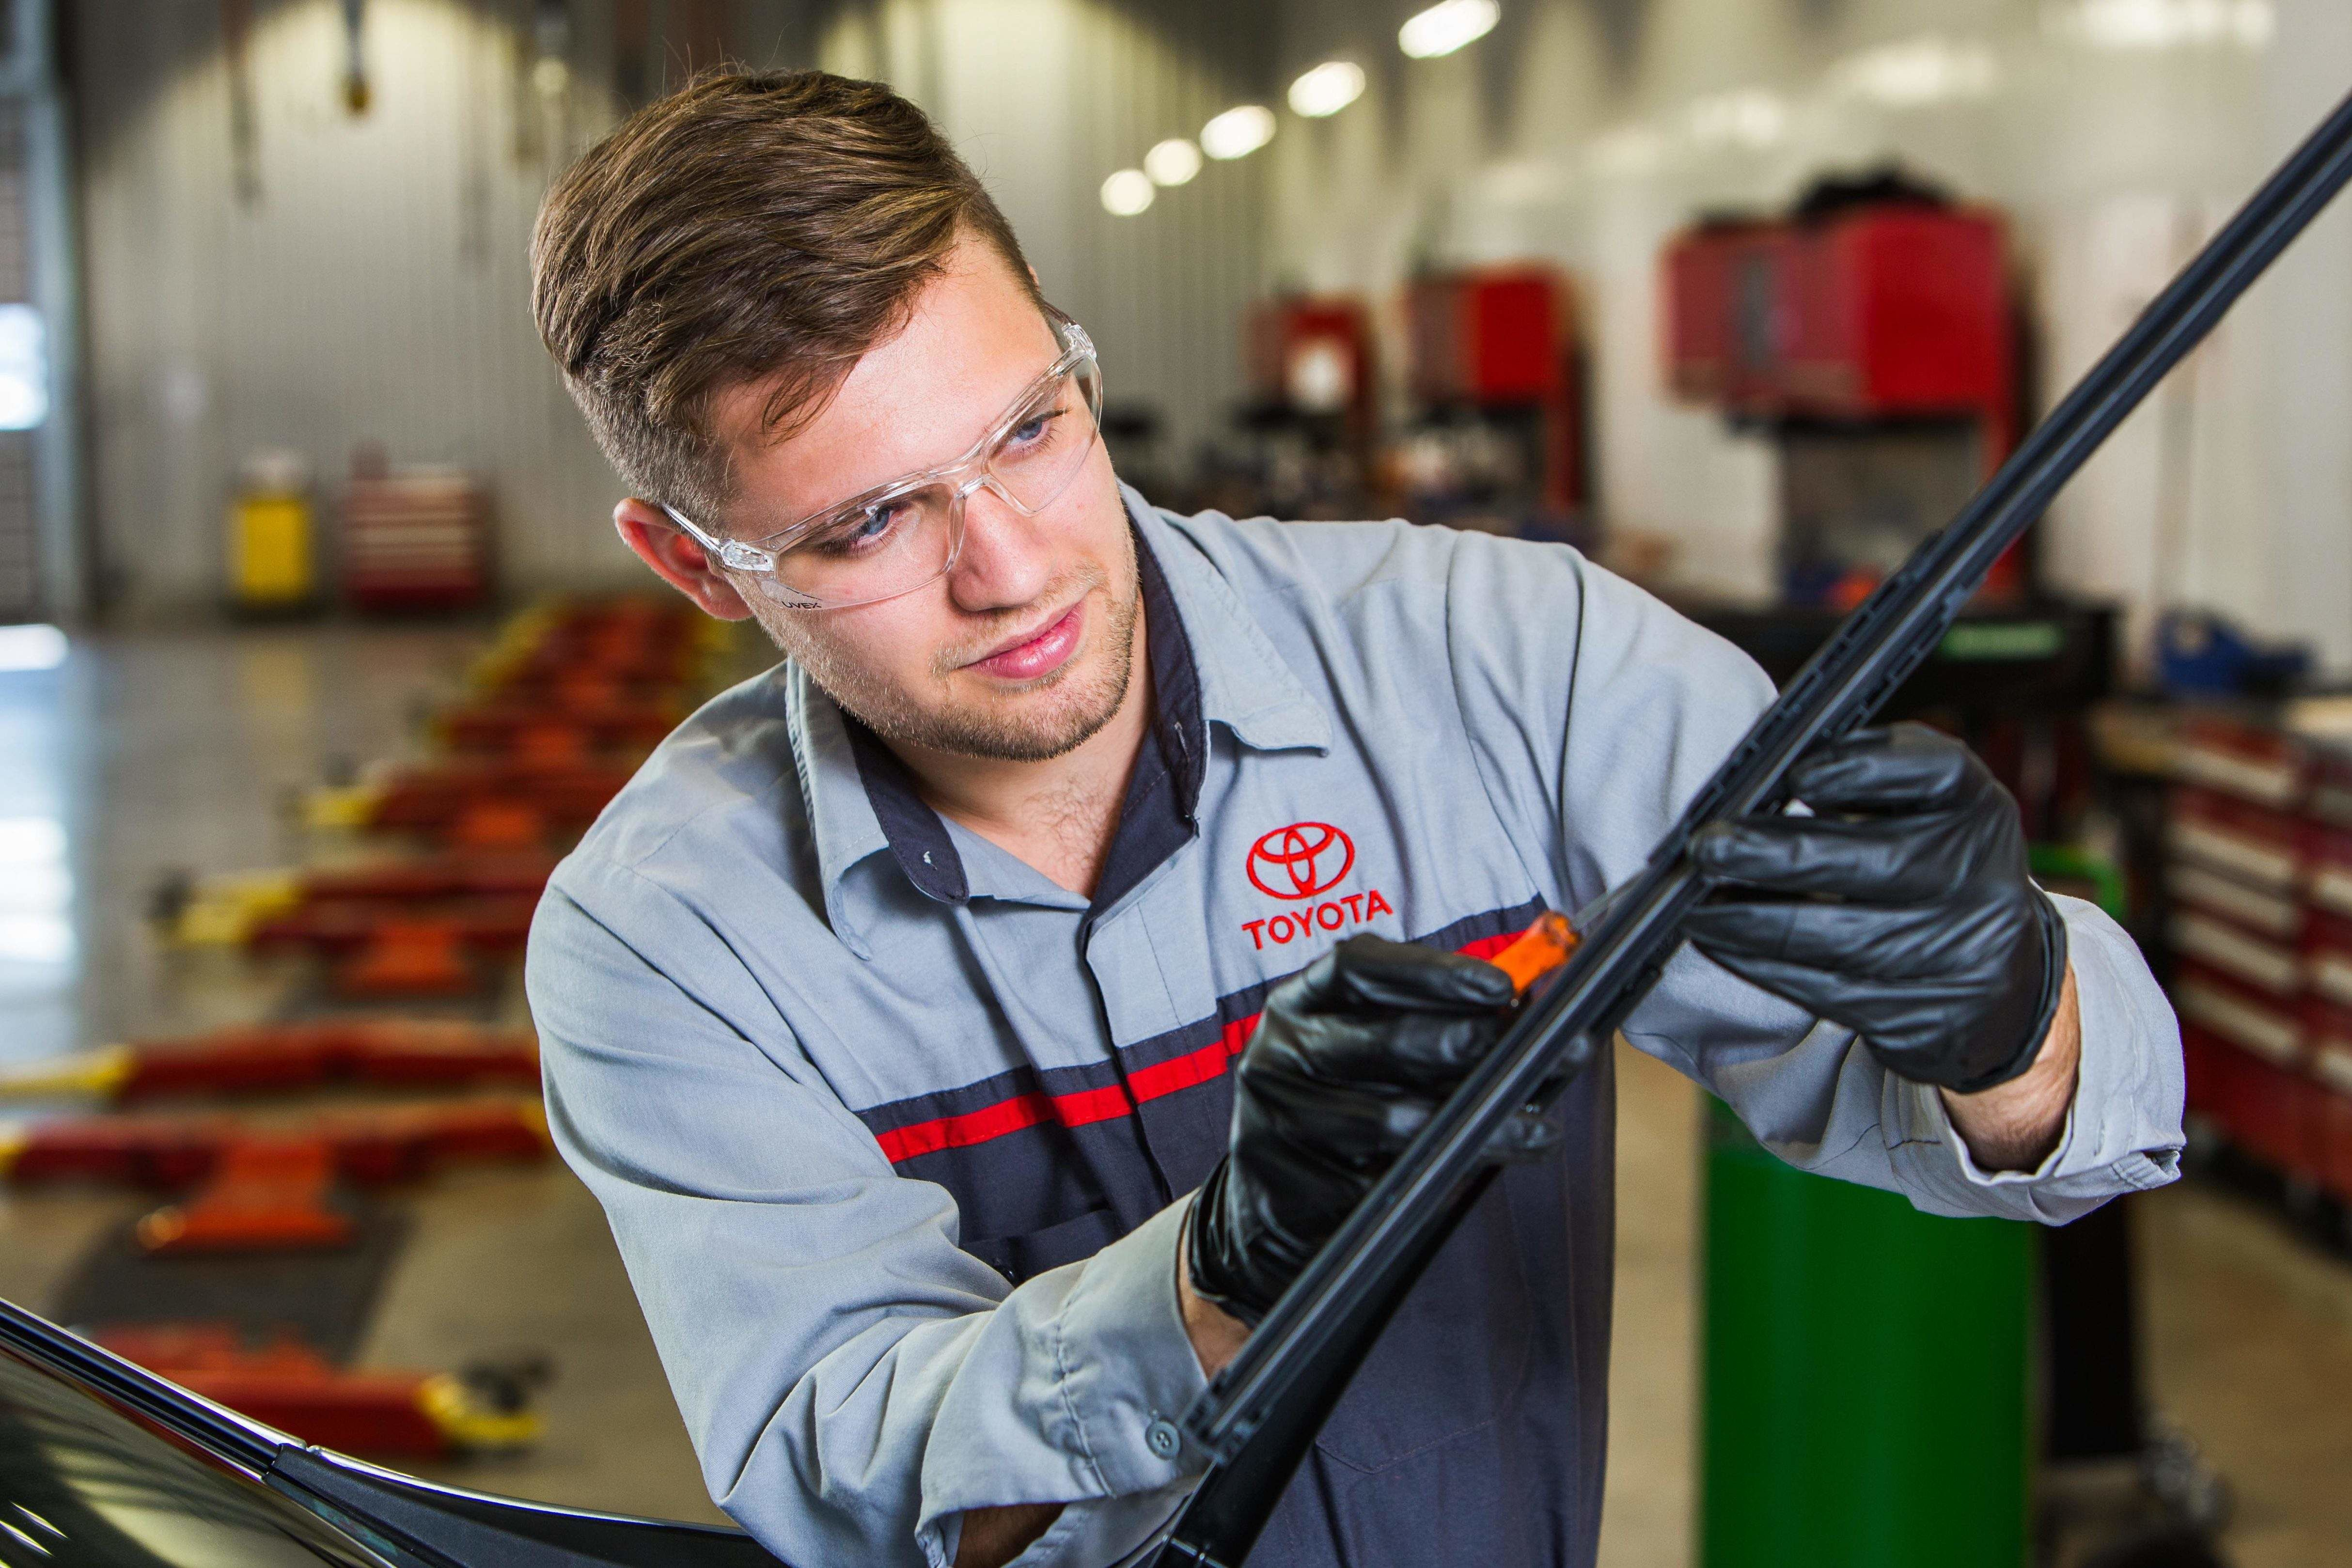 Windshield wiper replacement by Toyota Service